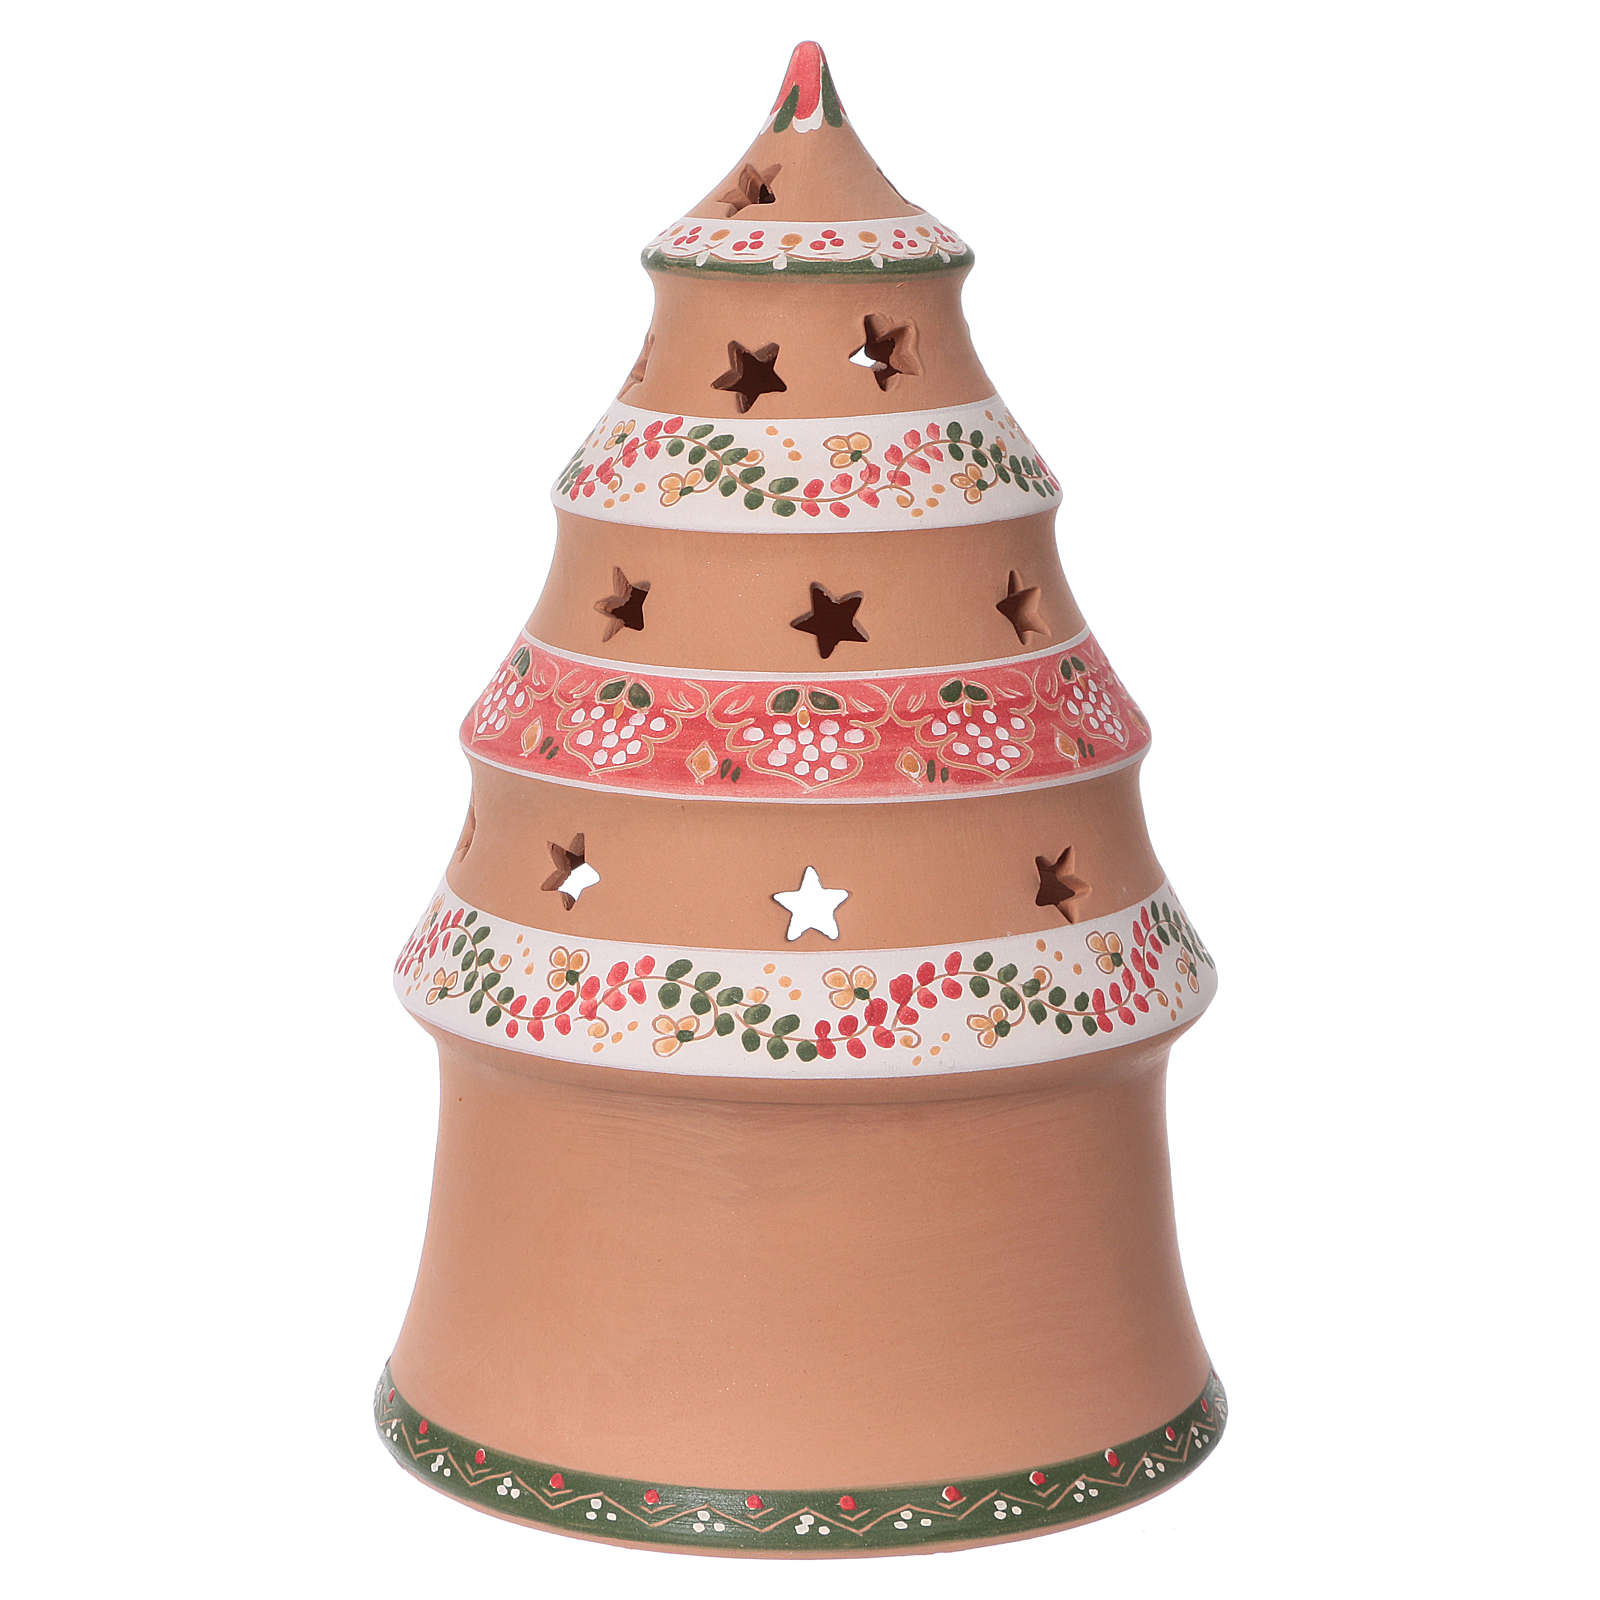 Country-style Christmas tree 25x15x15 cm with Nativity scene 7 cm in Deruta ceramic 4